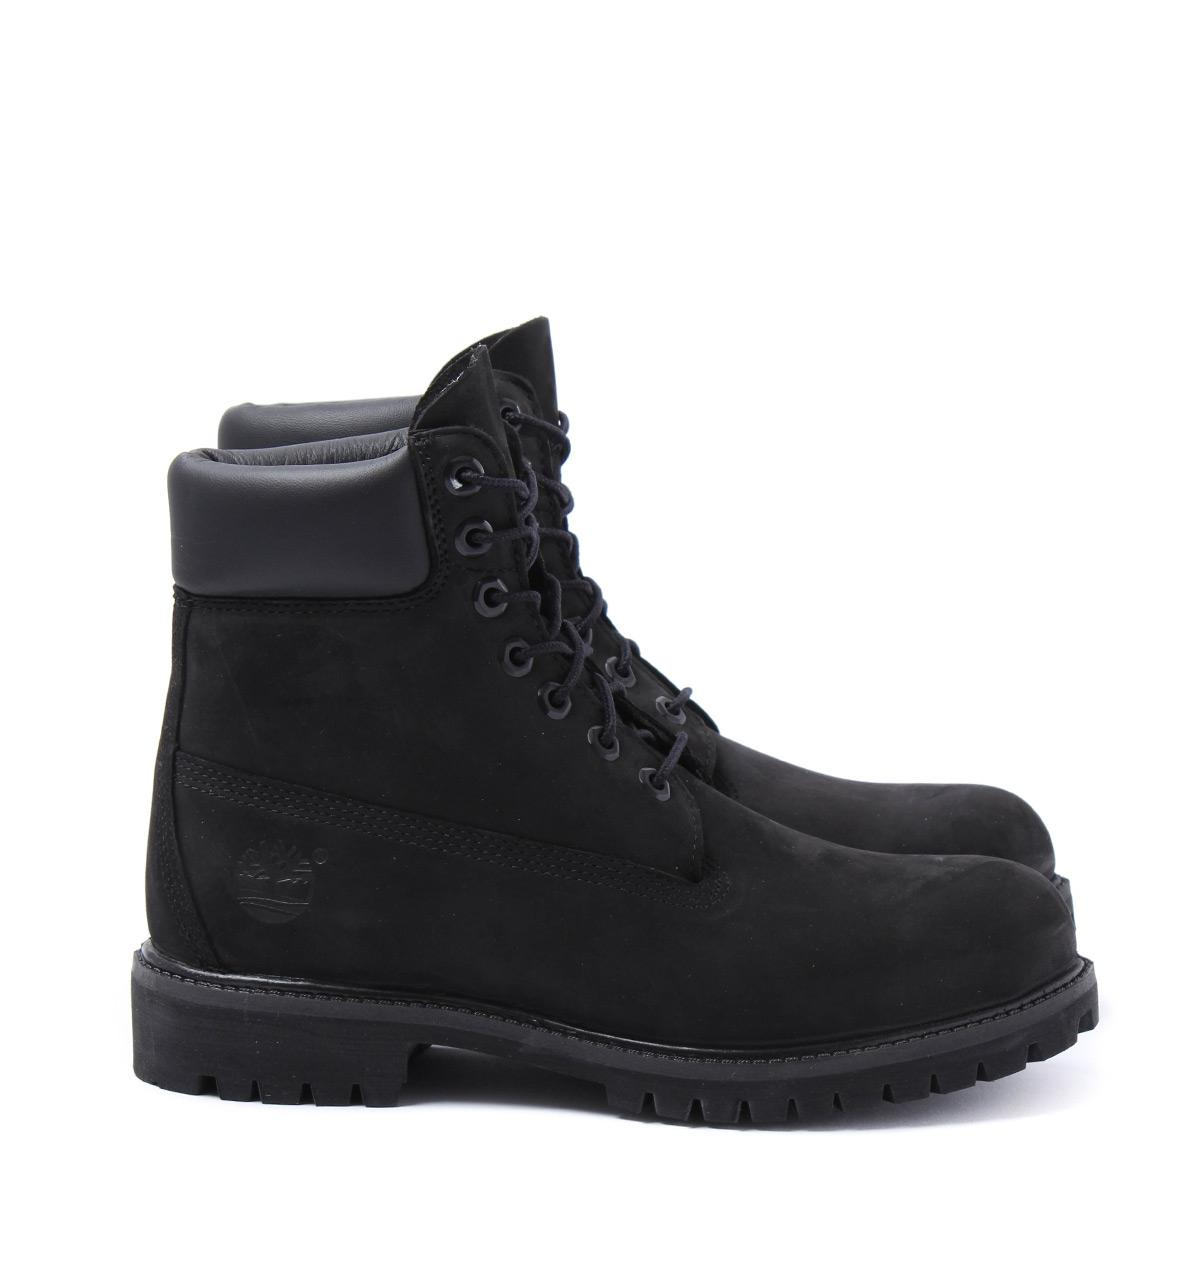 730636512f9 Timberland - Icon Black 6-inch Premium Wide Fit Boots for Men - Lyst. View  fullscreen